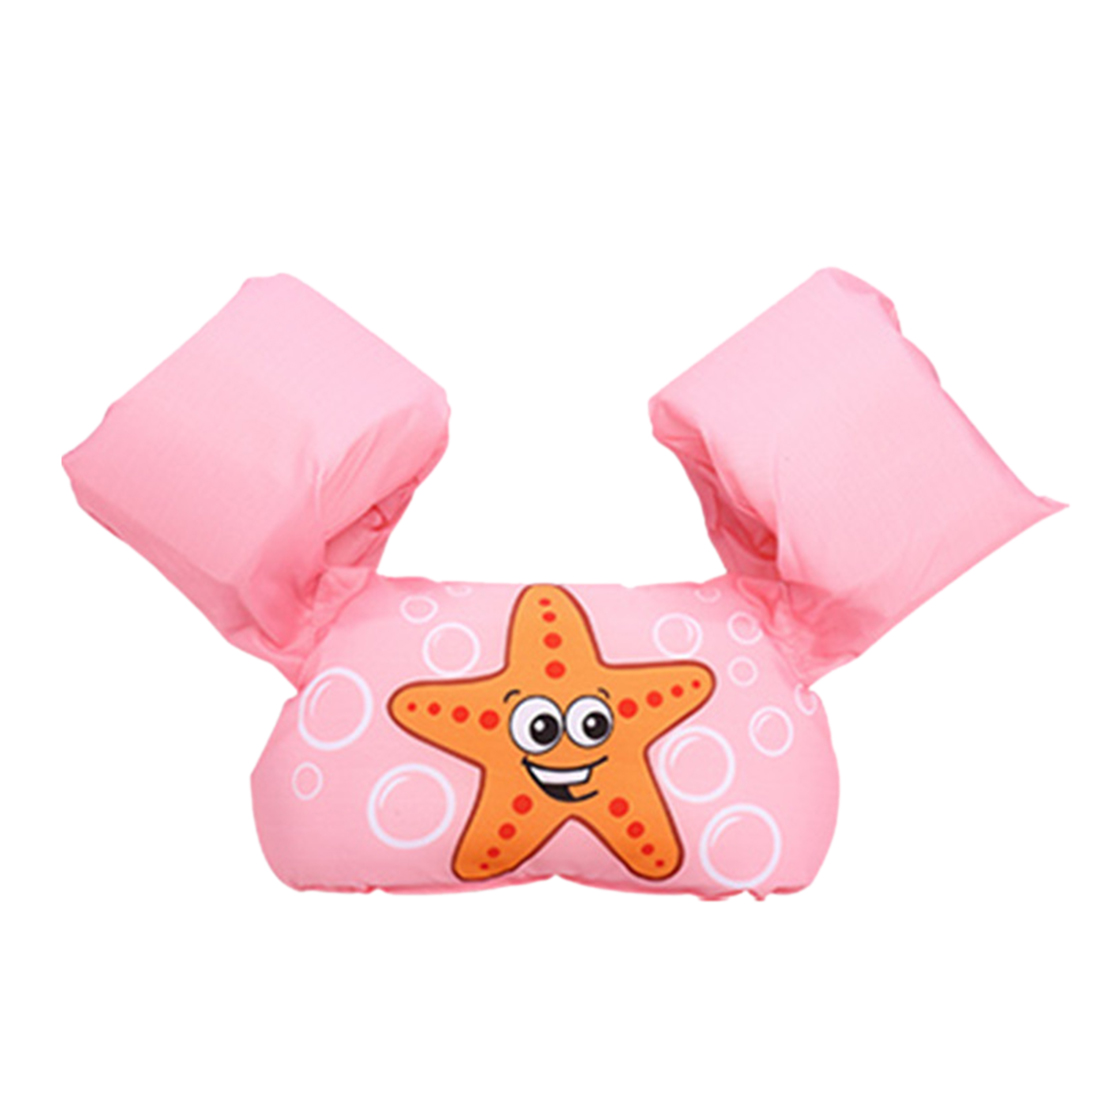 Baby Inflatable Swimming Arm Bands Floatation Sleeves Water Wings - Pink